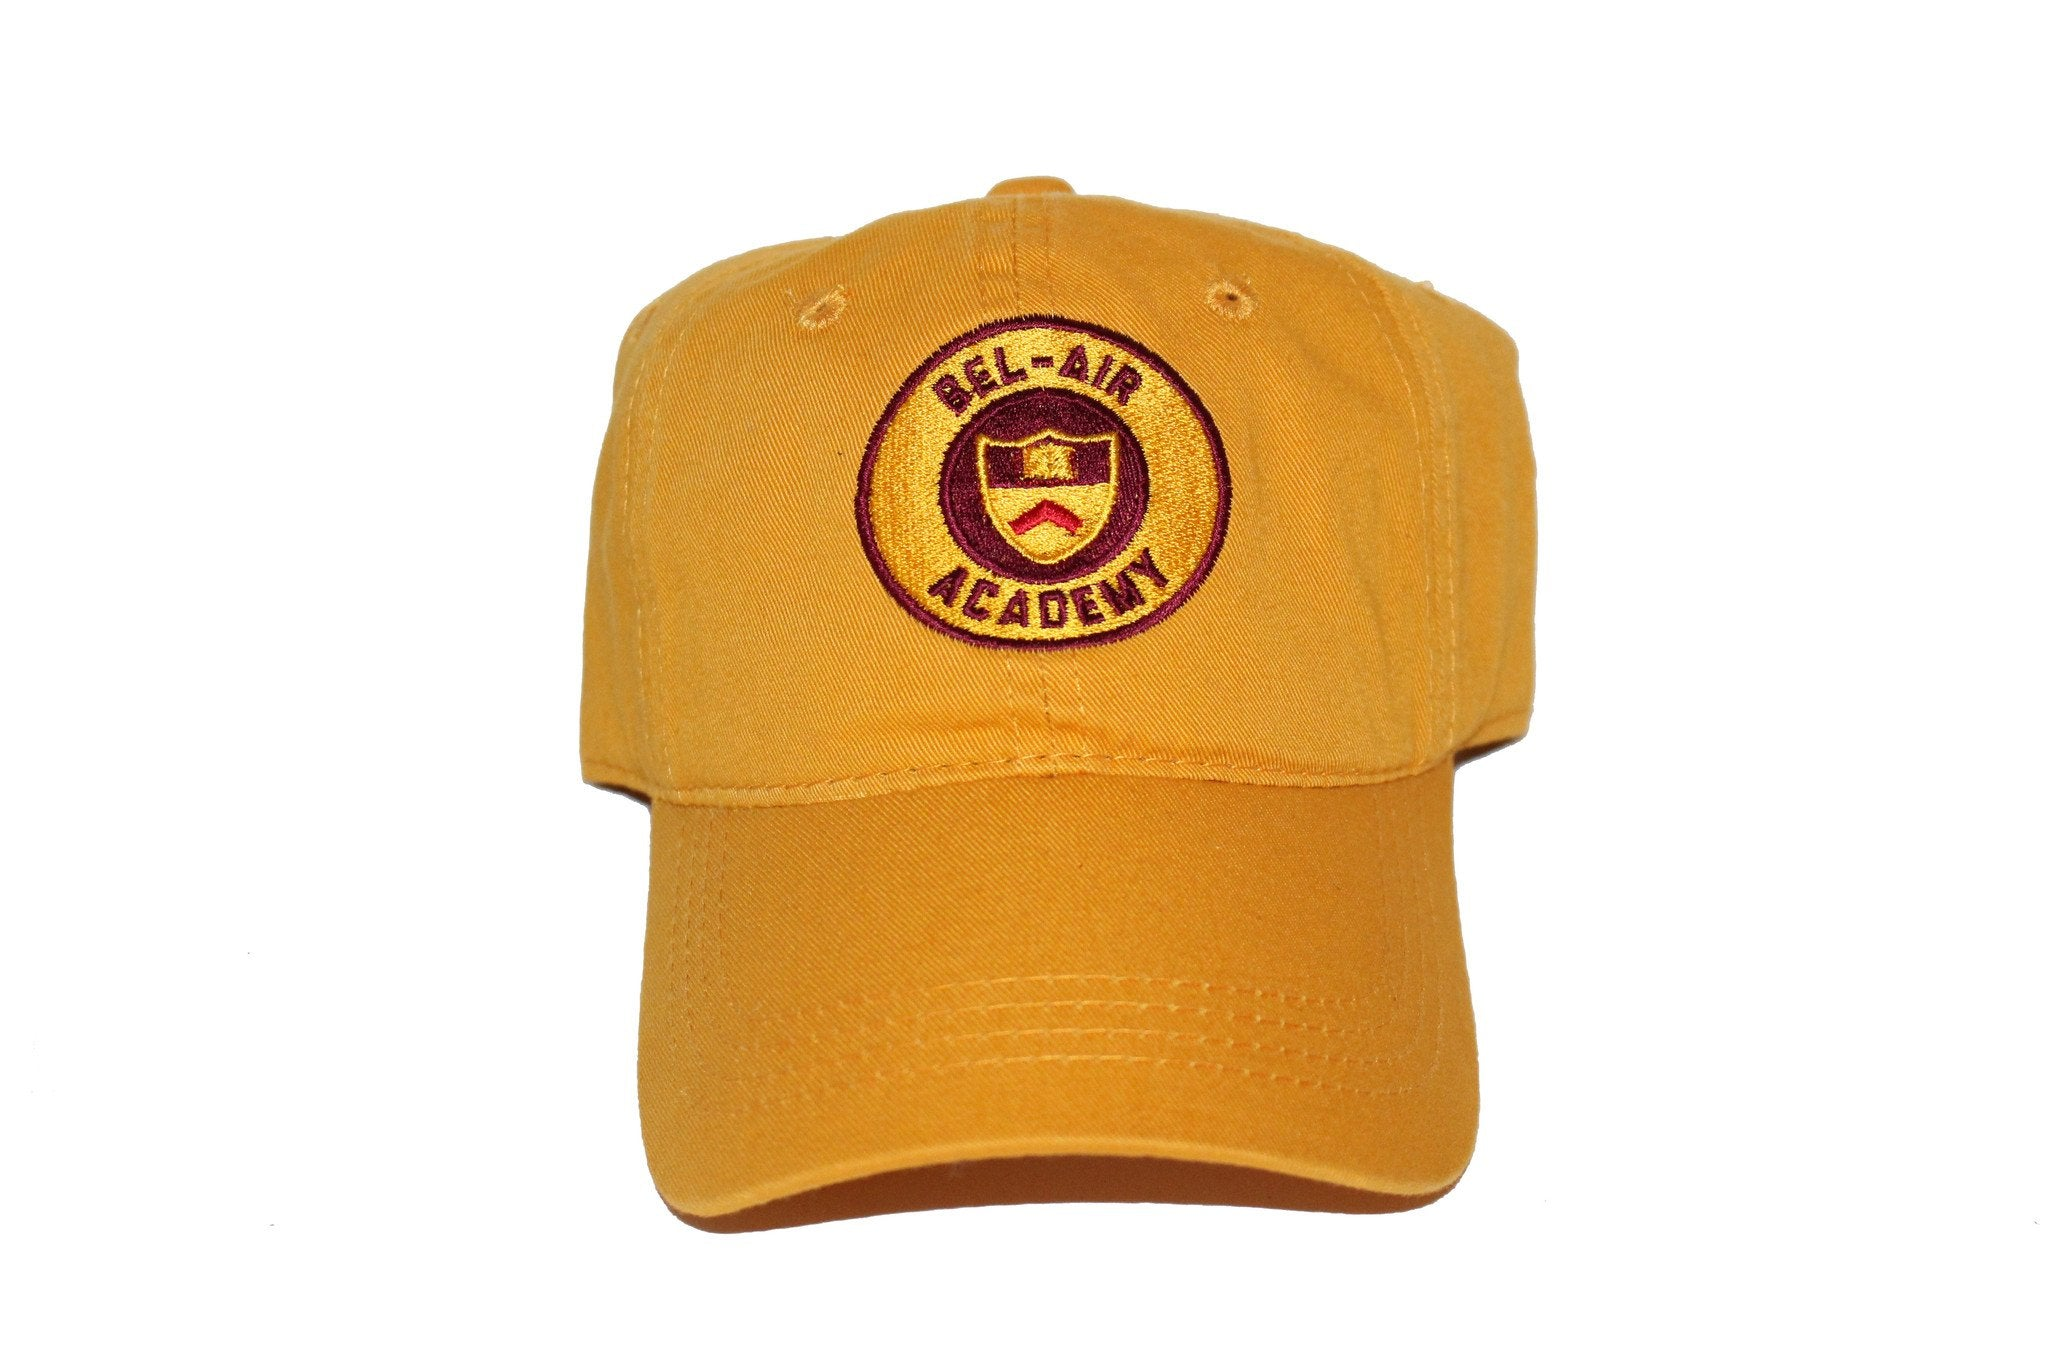 Gold Bel-Air Academy Dad Hat – ApexHats 6077aec09b7